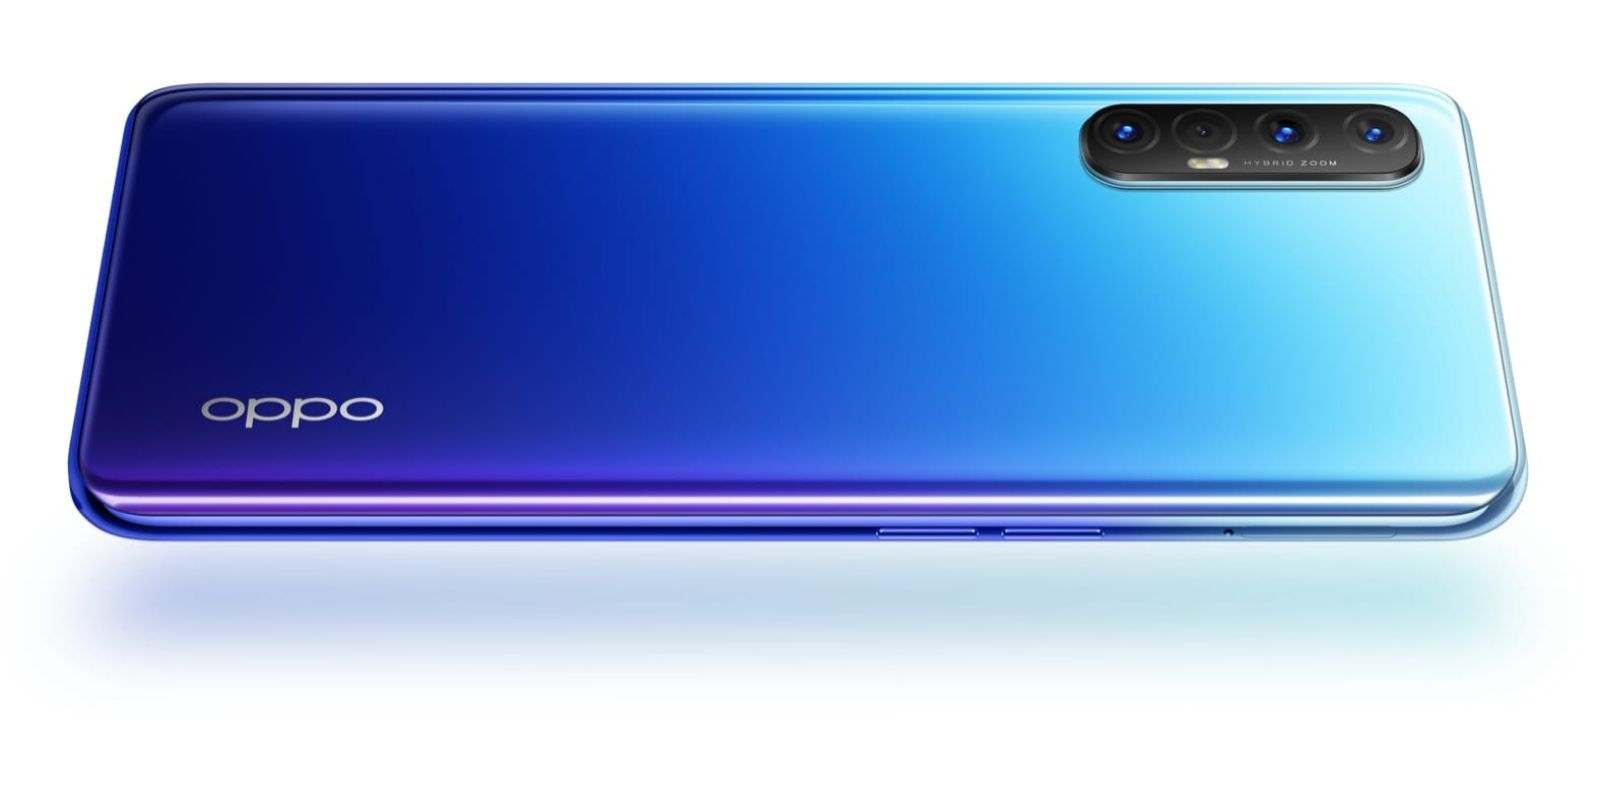 Oppo Reno 3 Pro non 5G indian model rear cameras